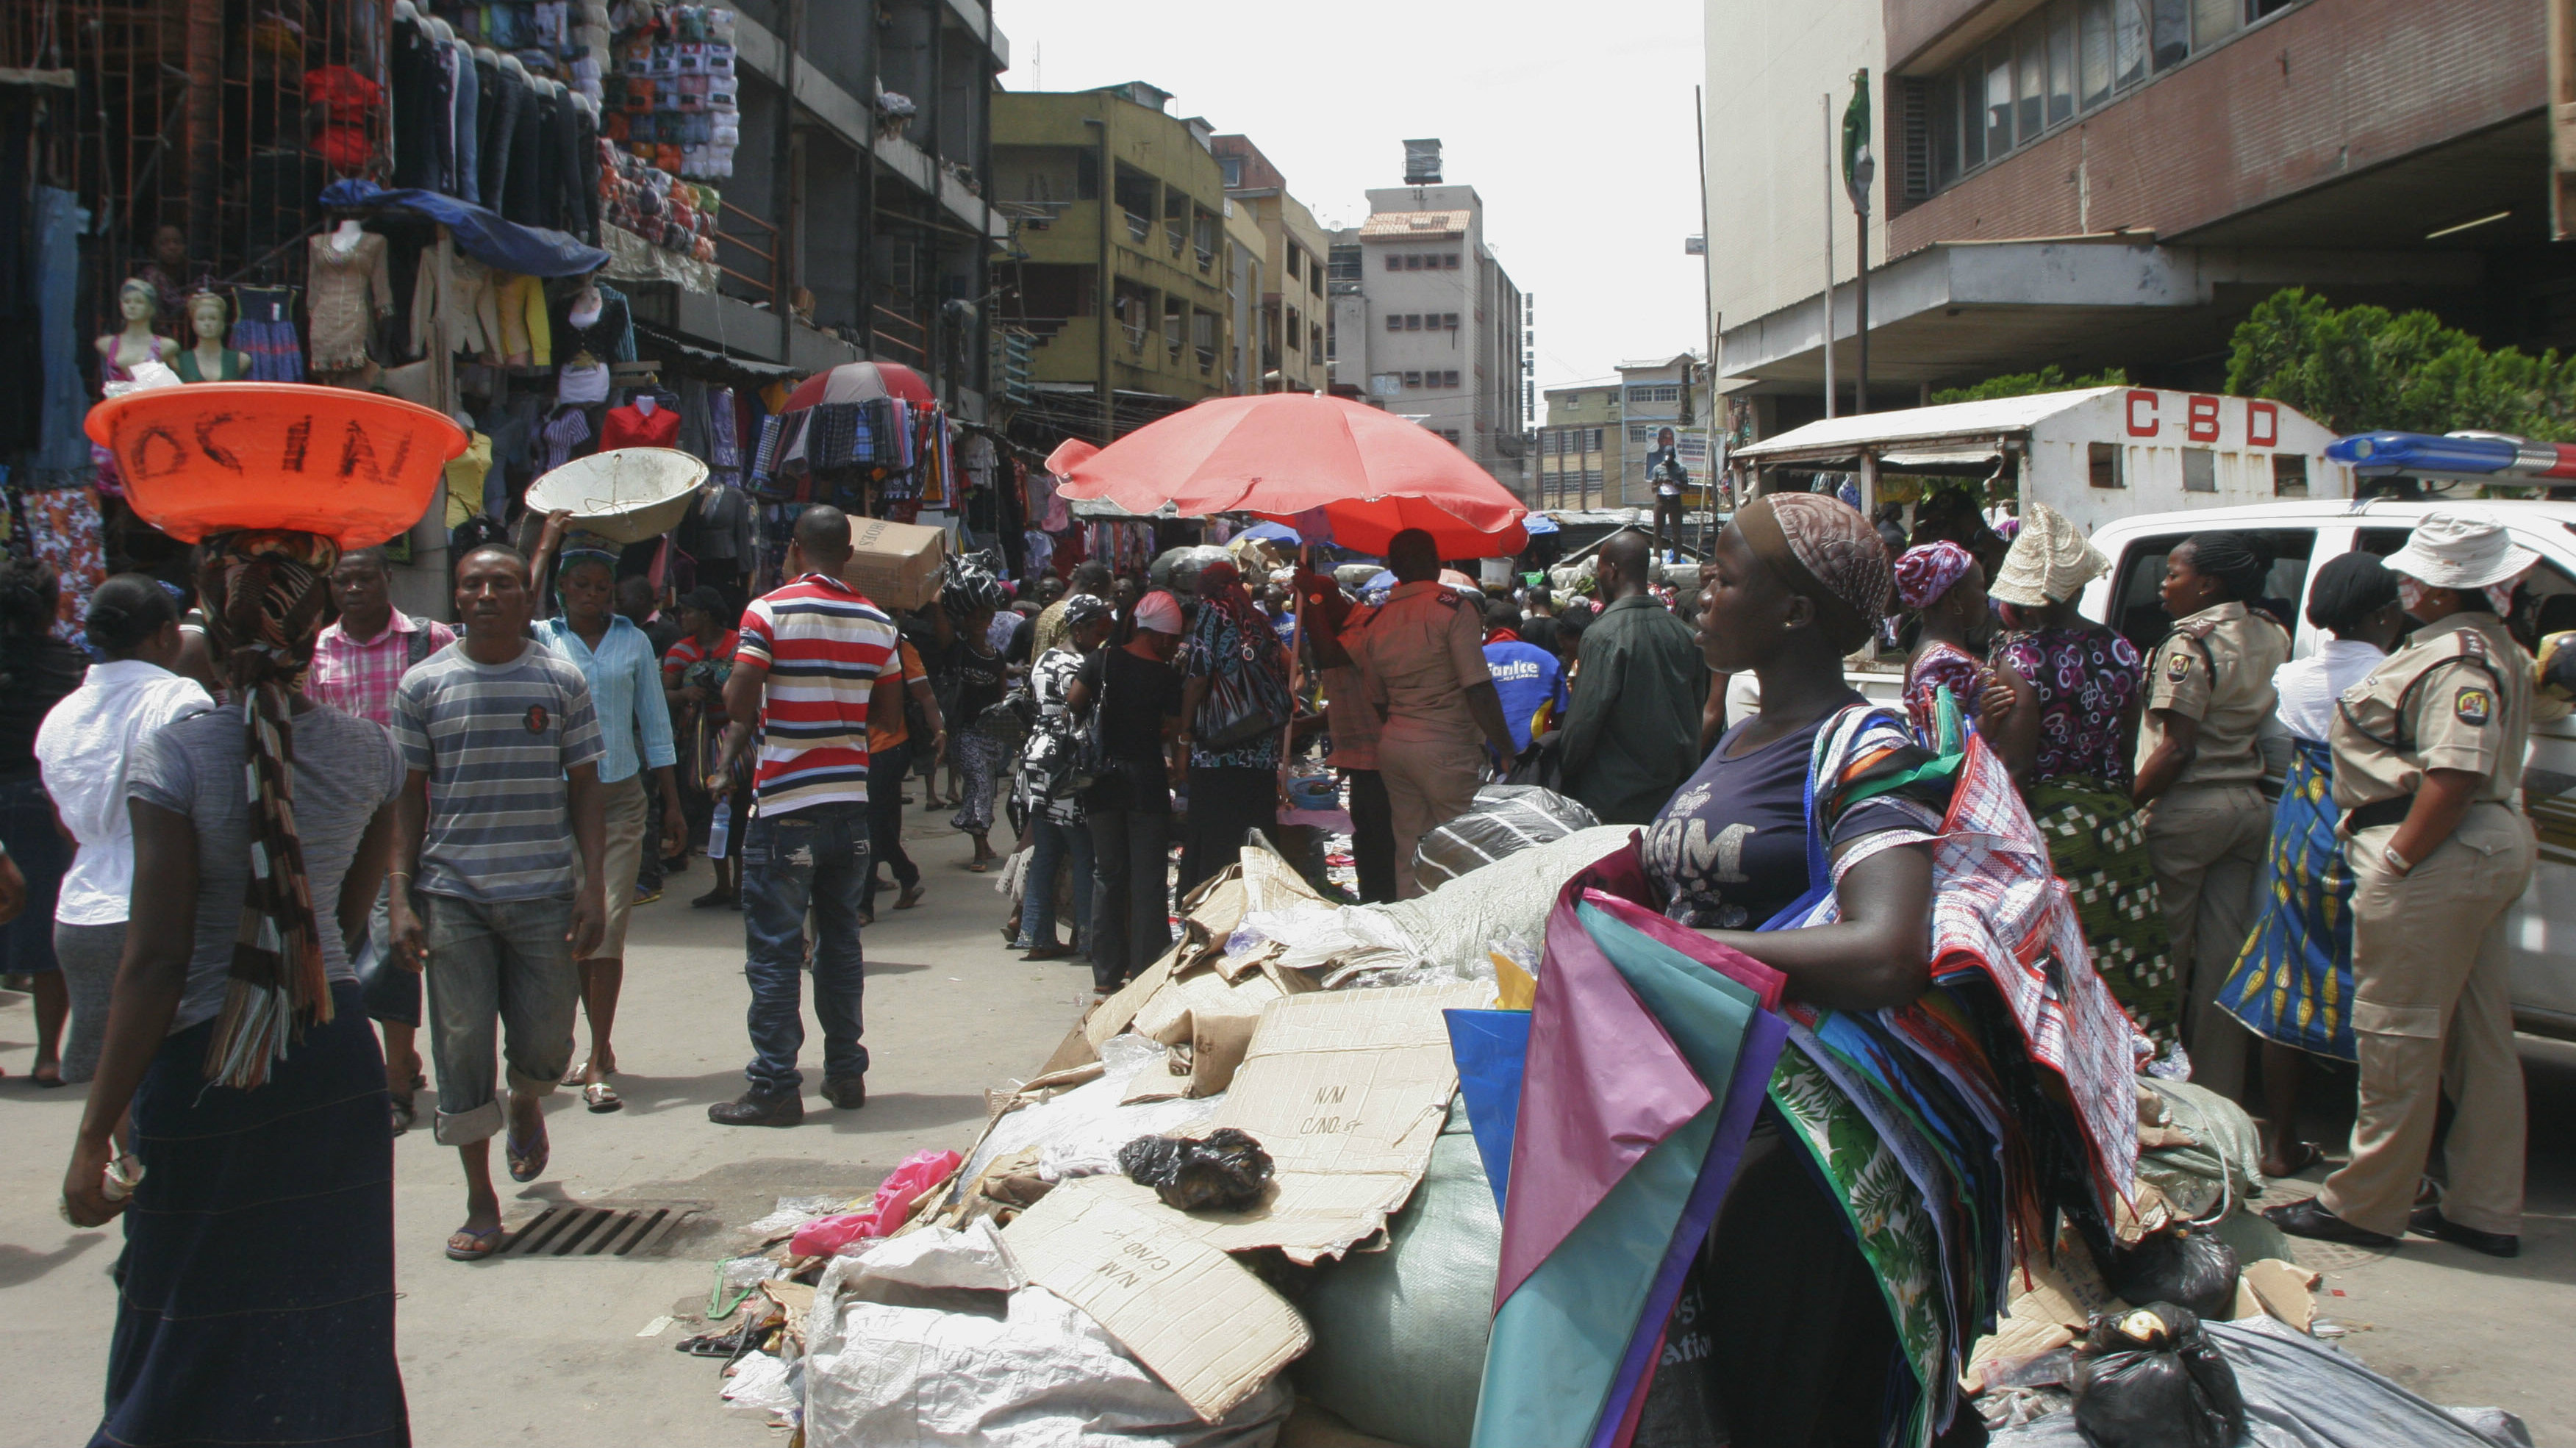 In this Thursday, Oct. 11, 2011 photo, a woman woman sells plastic bags in a busy market on Lagos Island in Lagos, Nigeria. Lagos is expected to overtake Cairo soon as Africa's largest city. In Nigeria's commercial capital, the population is estimated at 15 million and growing at 6 percent or more each year. Problems with traffic congestion, sanitation and water supplies are staggering; a recent article in UN-Habitat said two-thirds of the residents live in poverty.